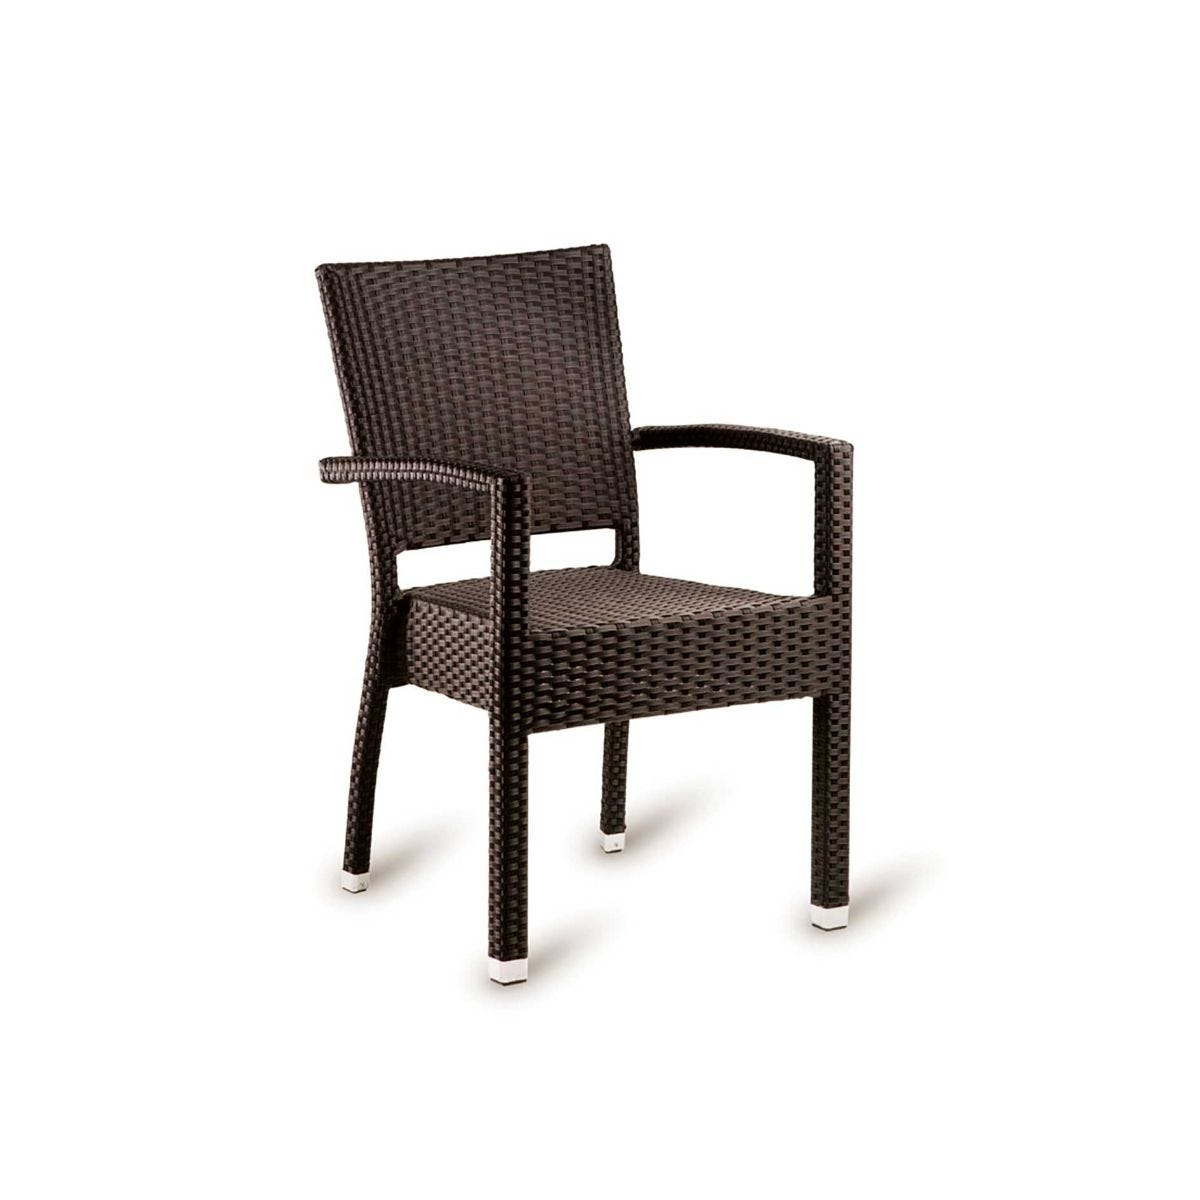 Stag Outdoor Arm Chair, Mocca